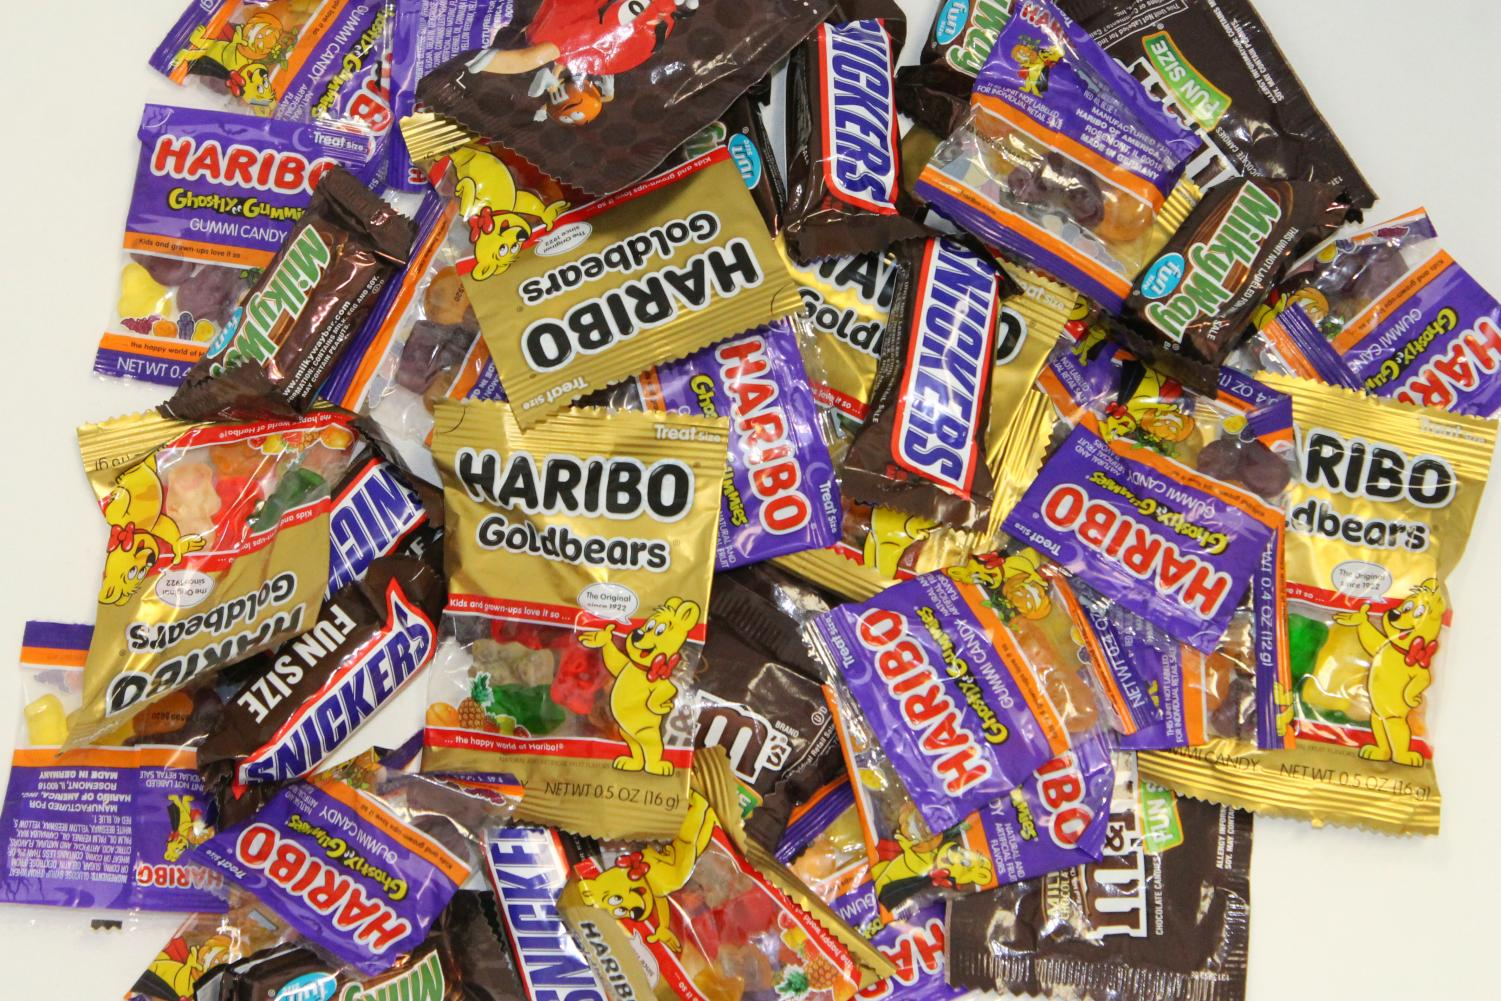 The Debate on Chocolates vs candy sweets on Halloween unfolds.